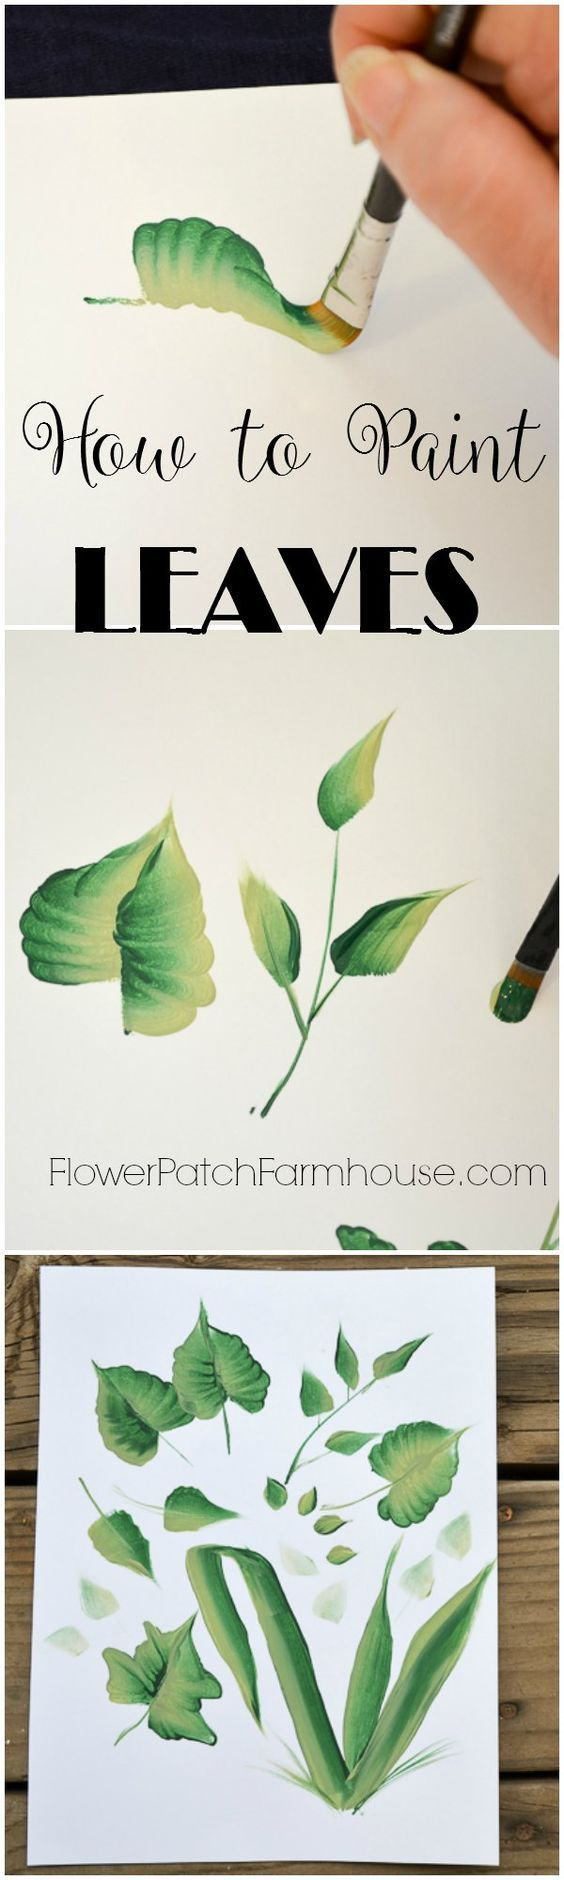 Easy Weekend DIY Projects For Home Decoration Simple Painted Leaves for Your Wall.